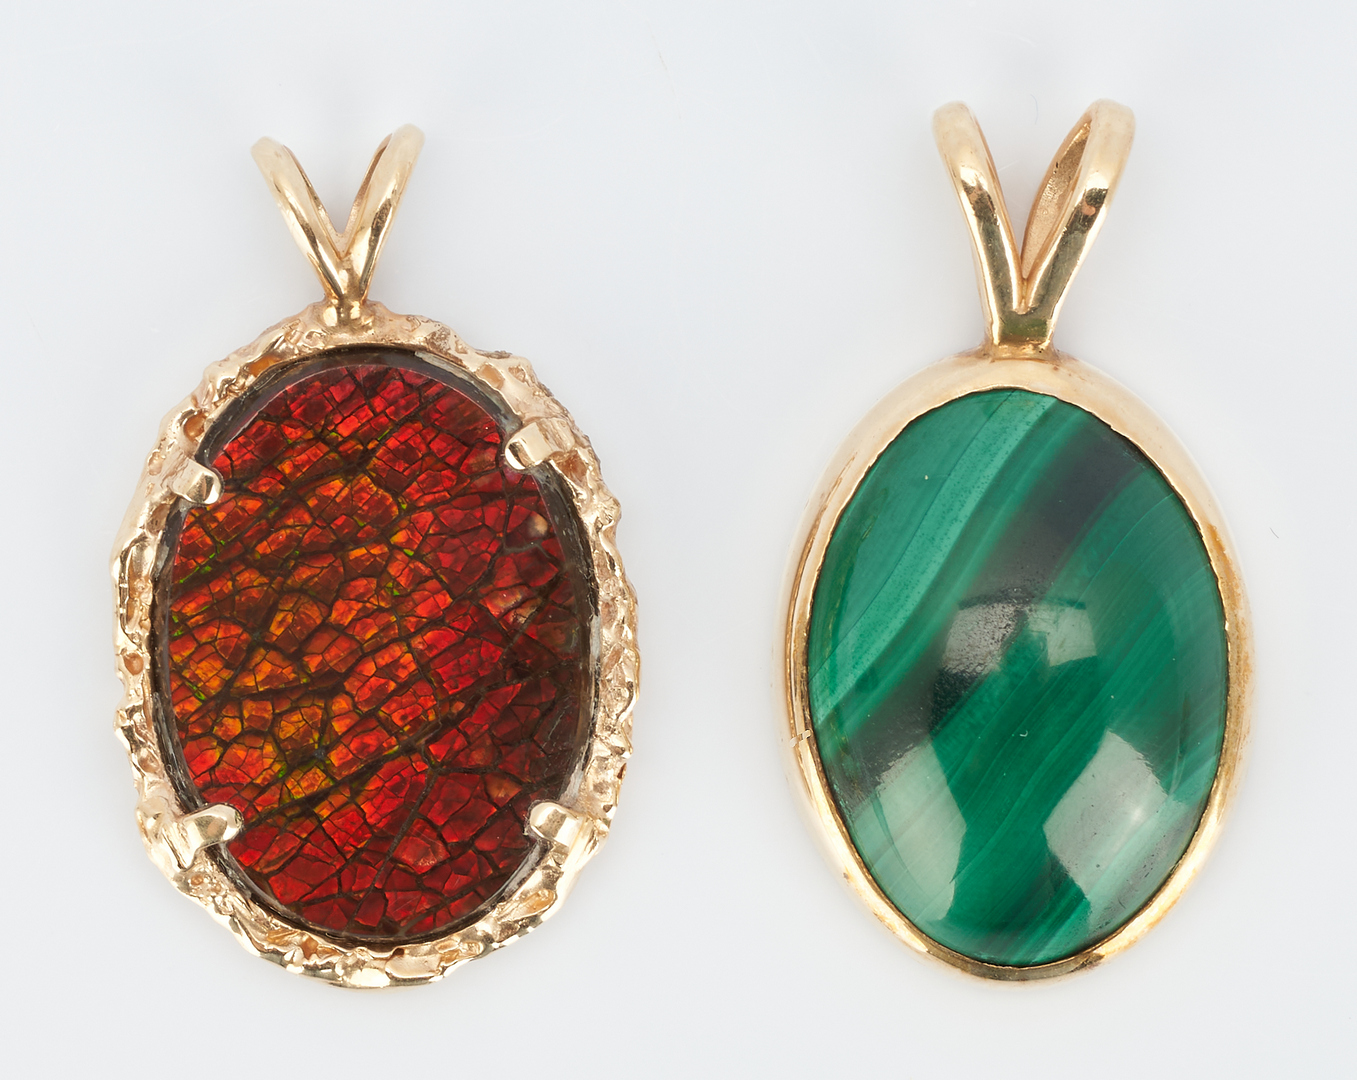 Lot 503: 5 Ladies 14K & Colored Stone Pendants